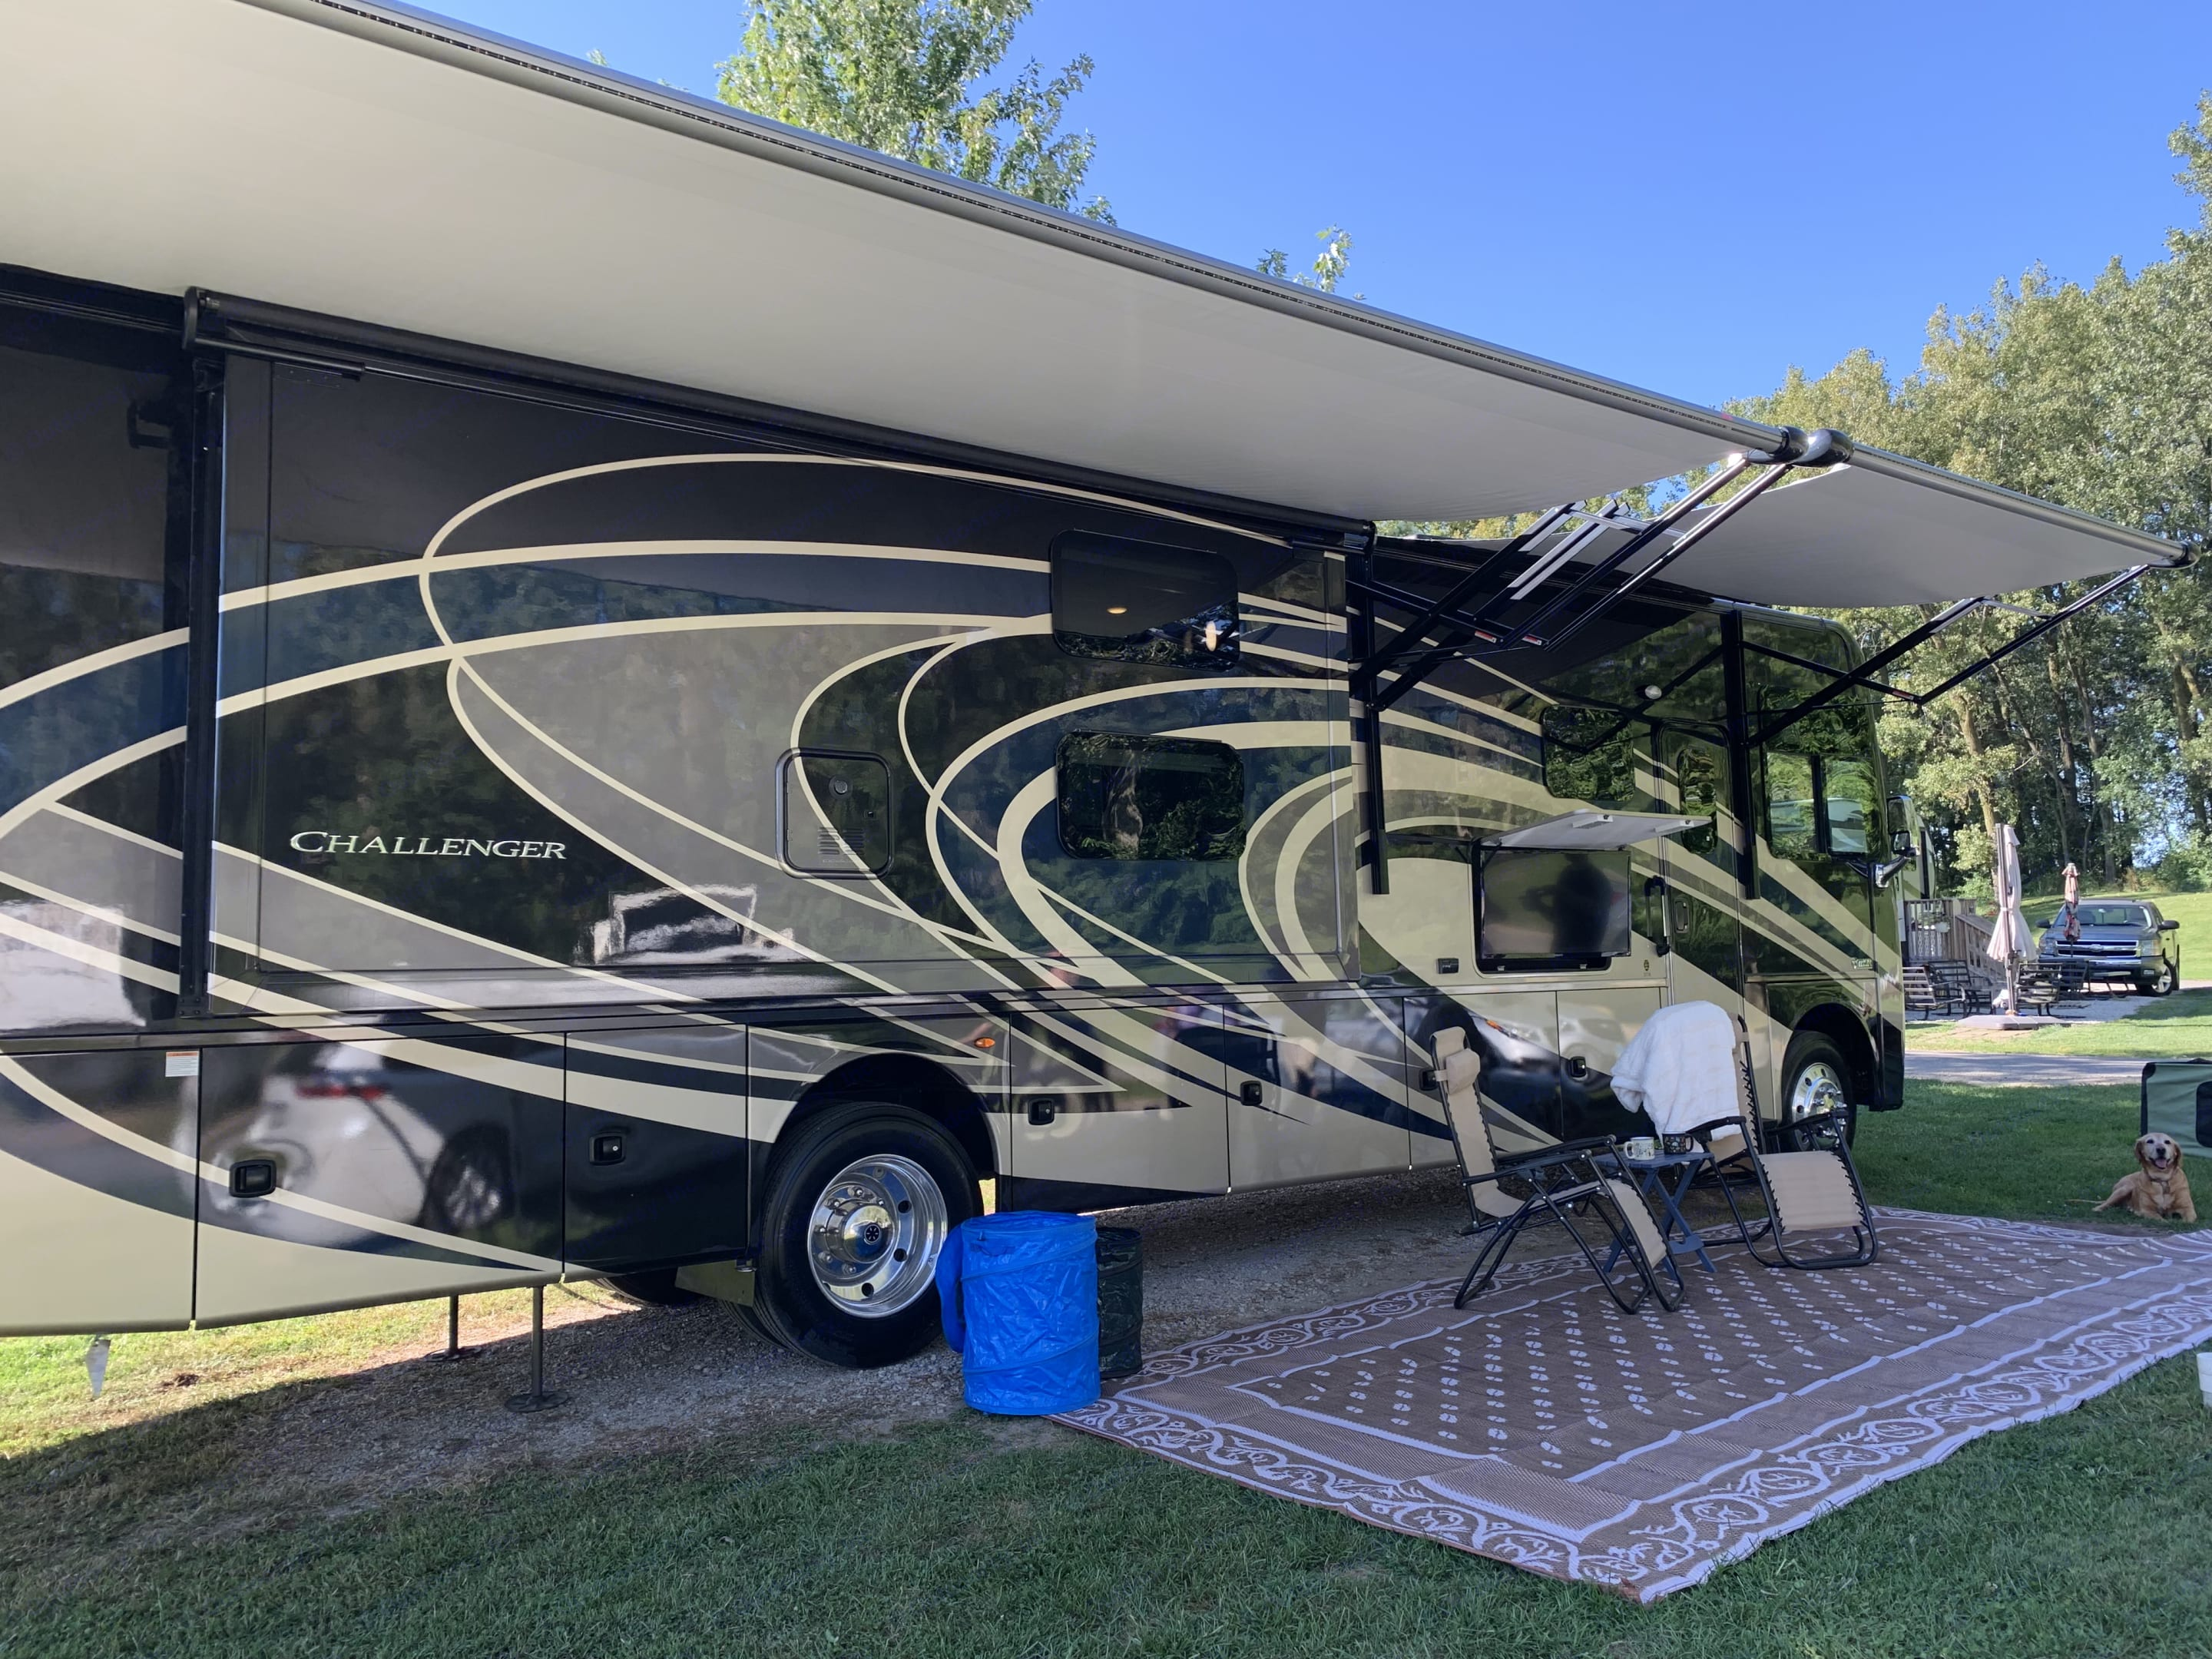 Enjoy the outdoors under the awnings watching the outdoor TV or listening to music via the Bluetooth soundbar.  . Thor Motor Coach Challenger 2019